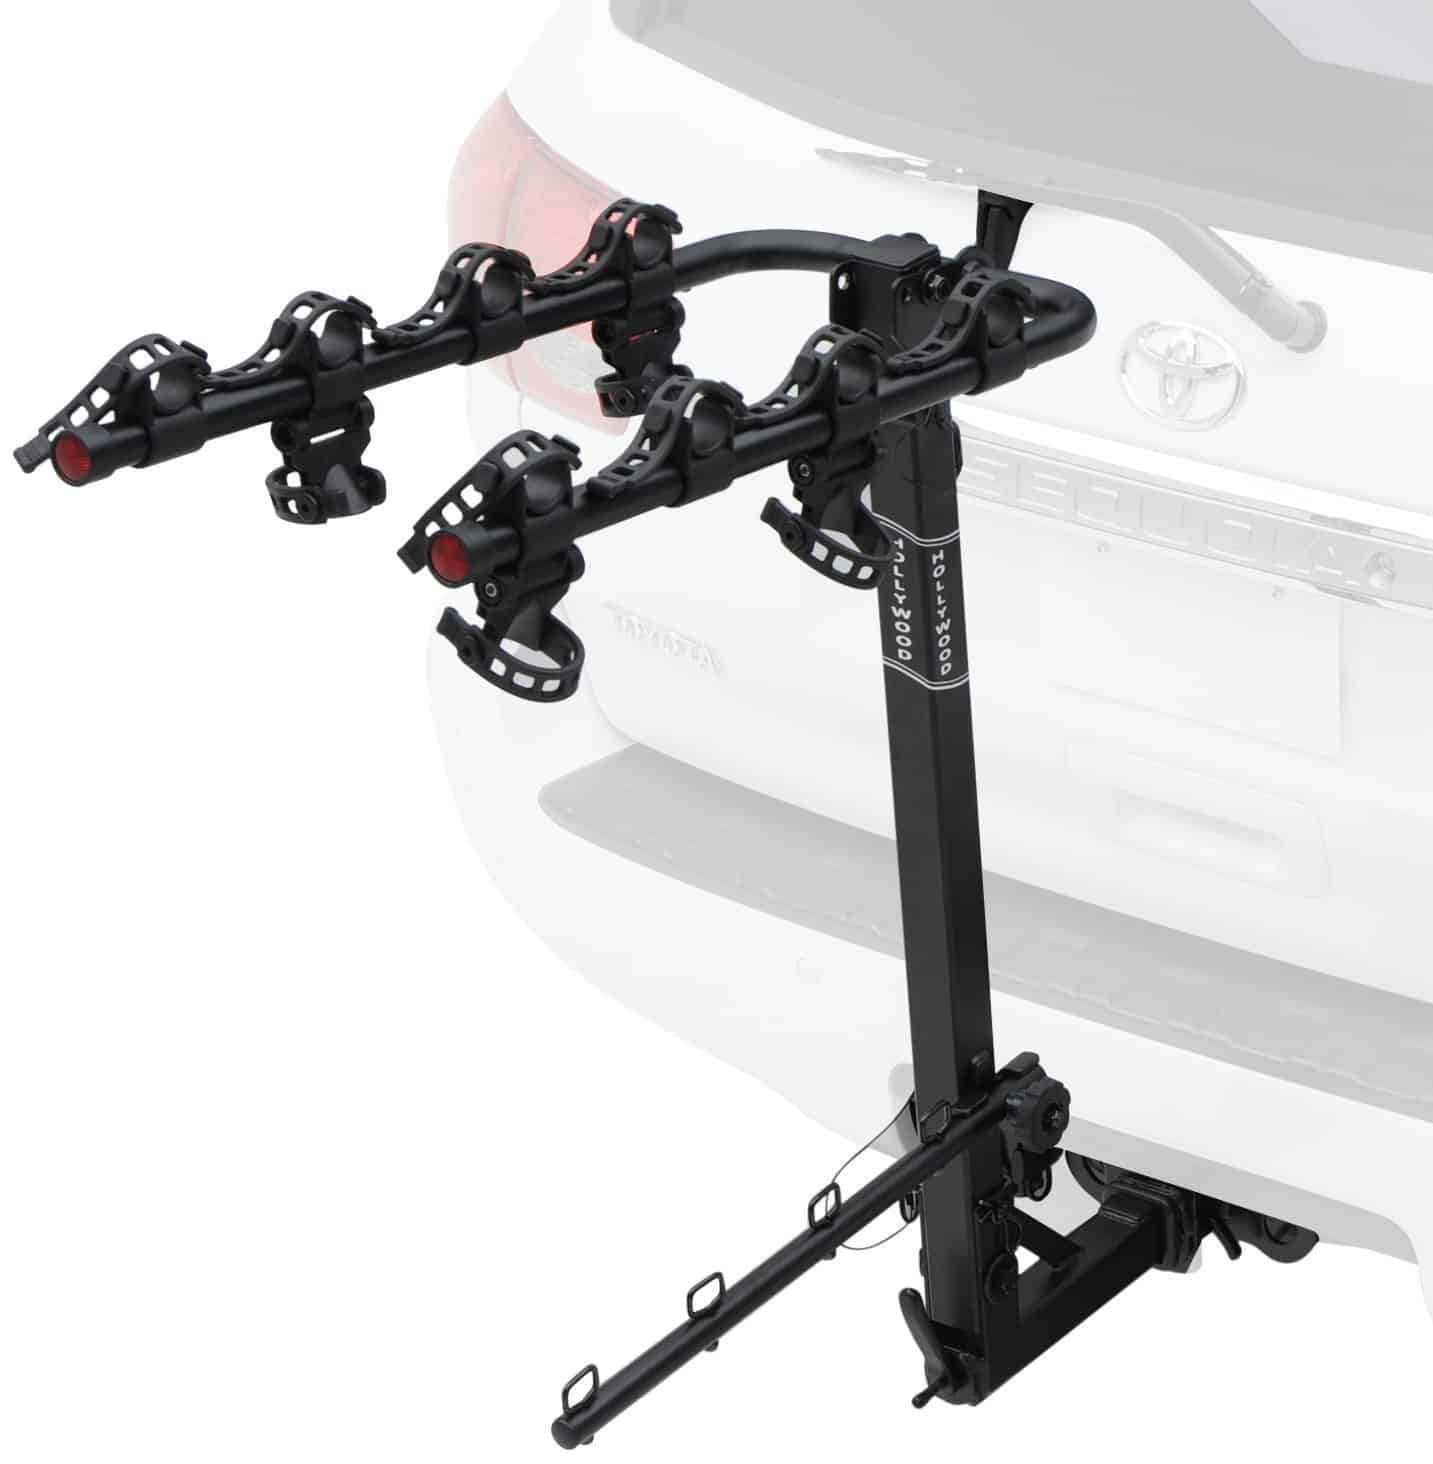 Hitch Mount Bike Racks Review And Comparison